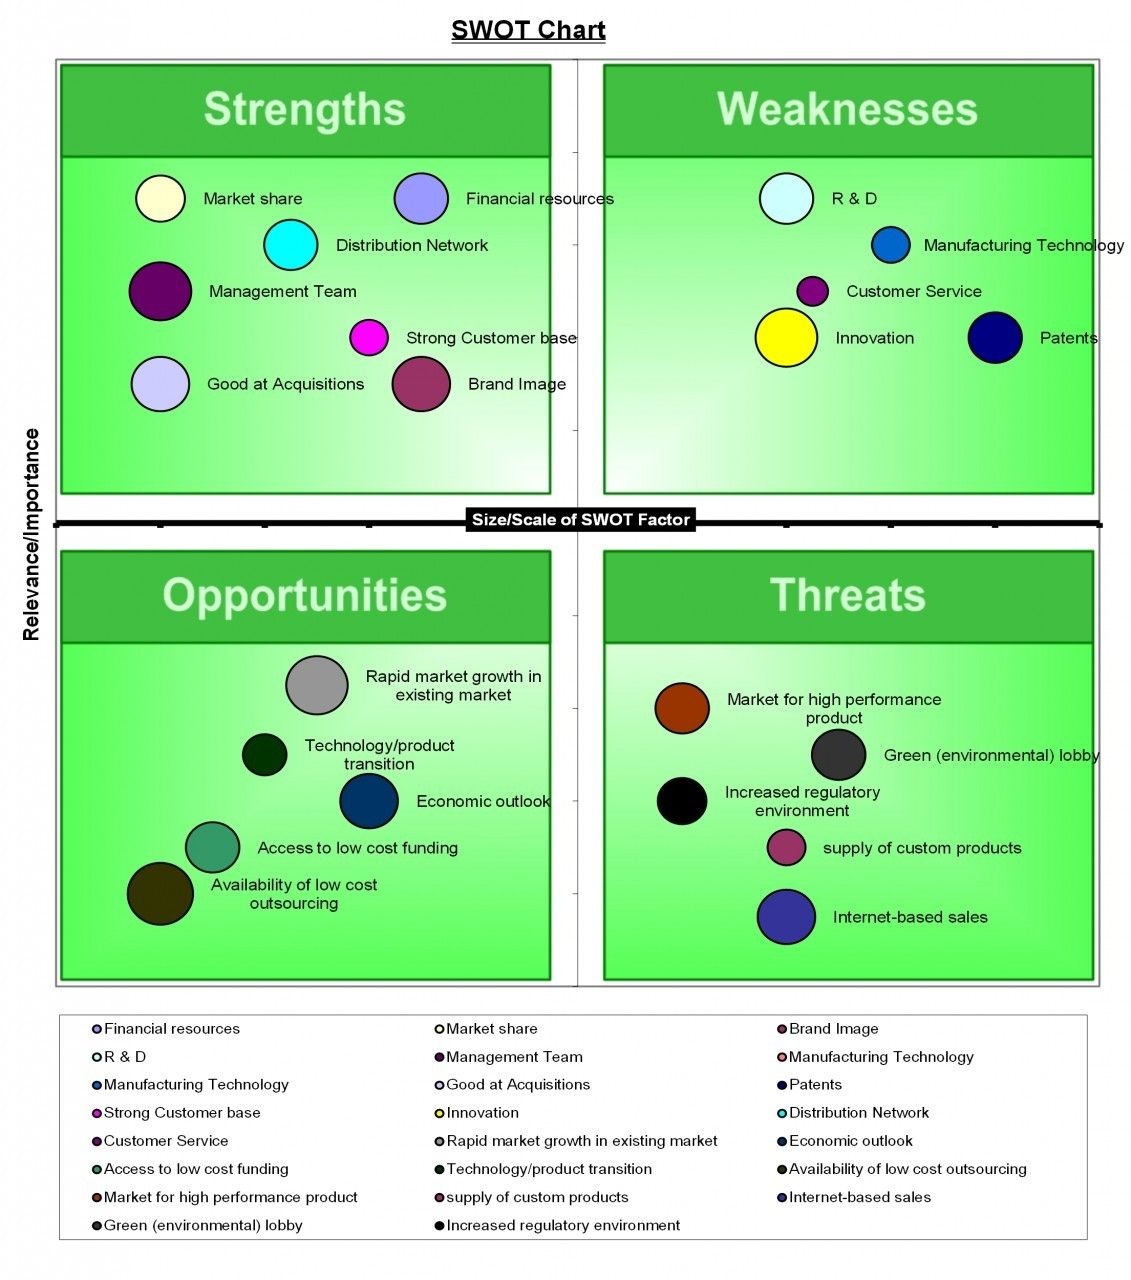 SWOT Analysis Template Excel | SWOT Matrix Template Excel  Microsoft Swot Analysis Template